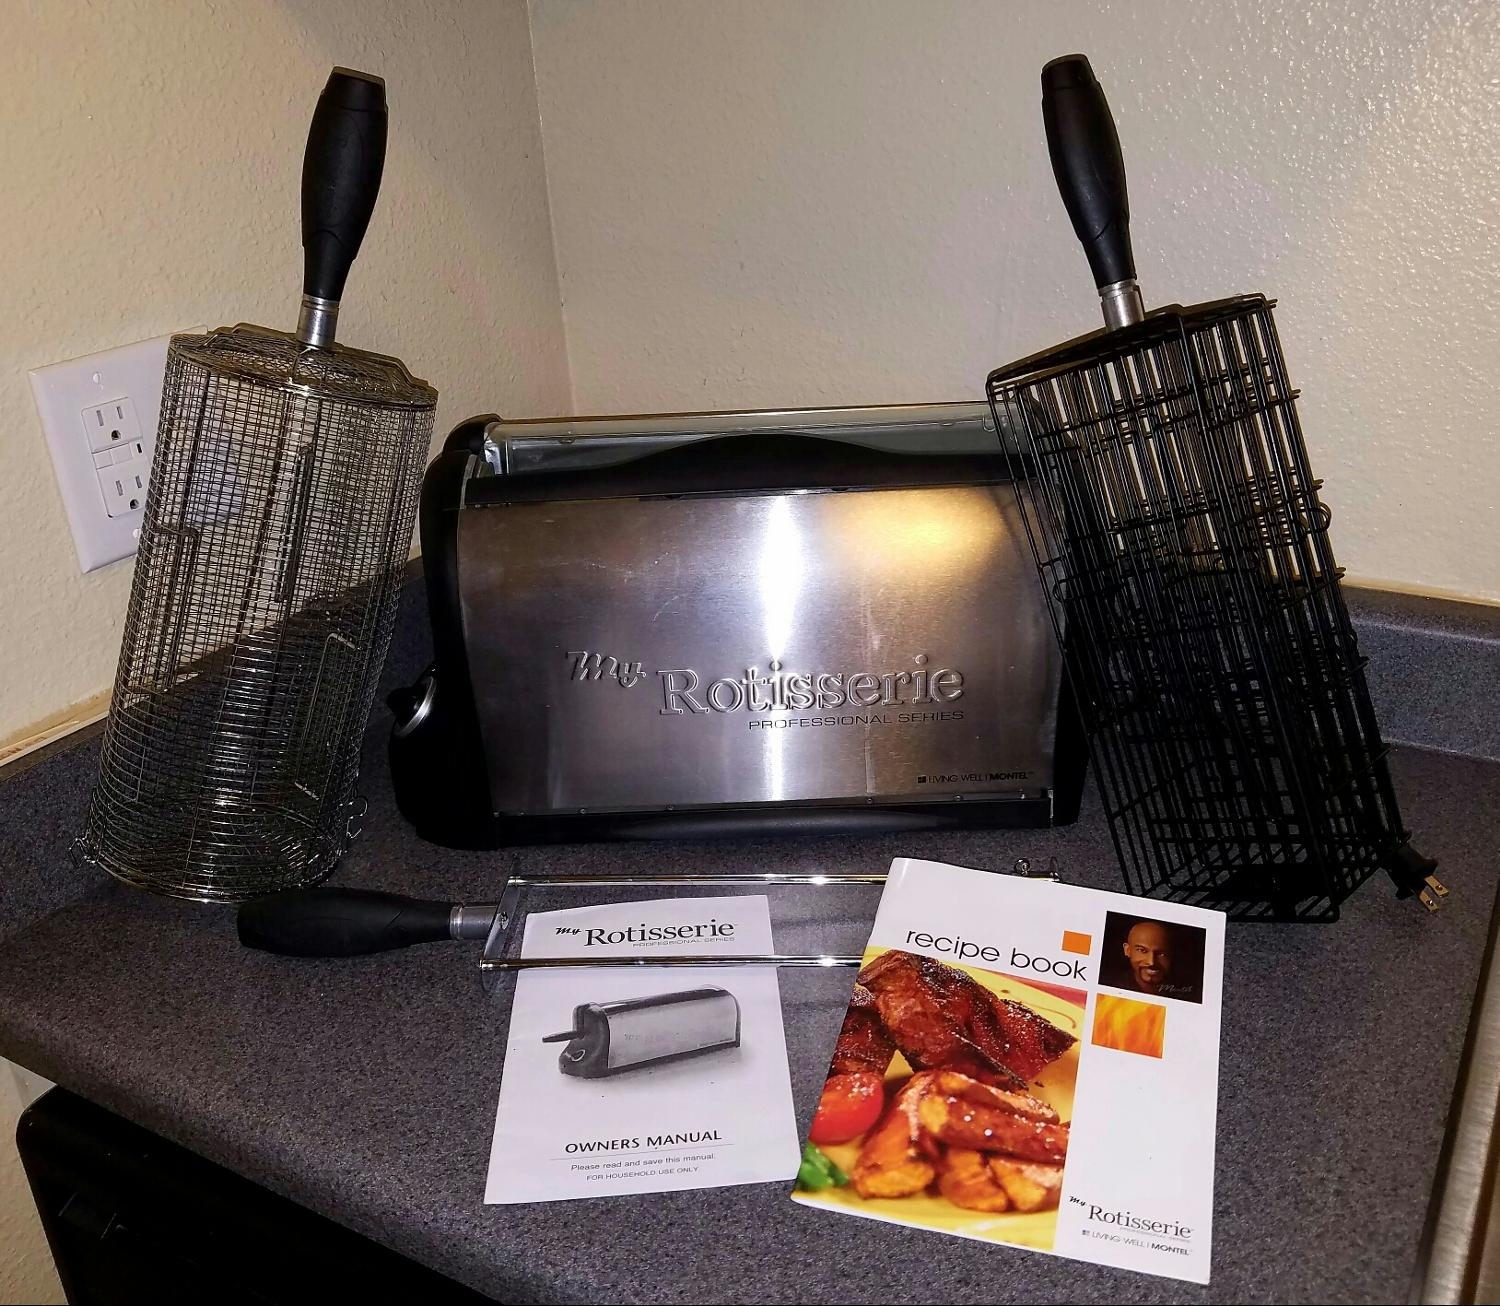 Find More Price Reduced My Rotisserie Professional Series